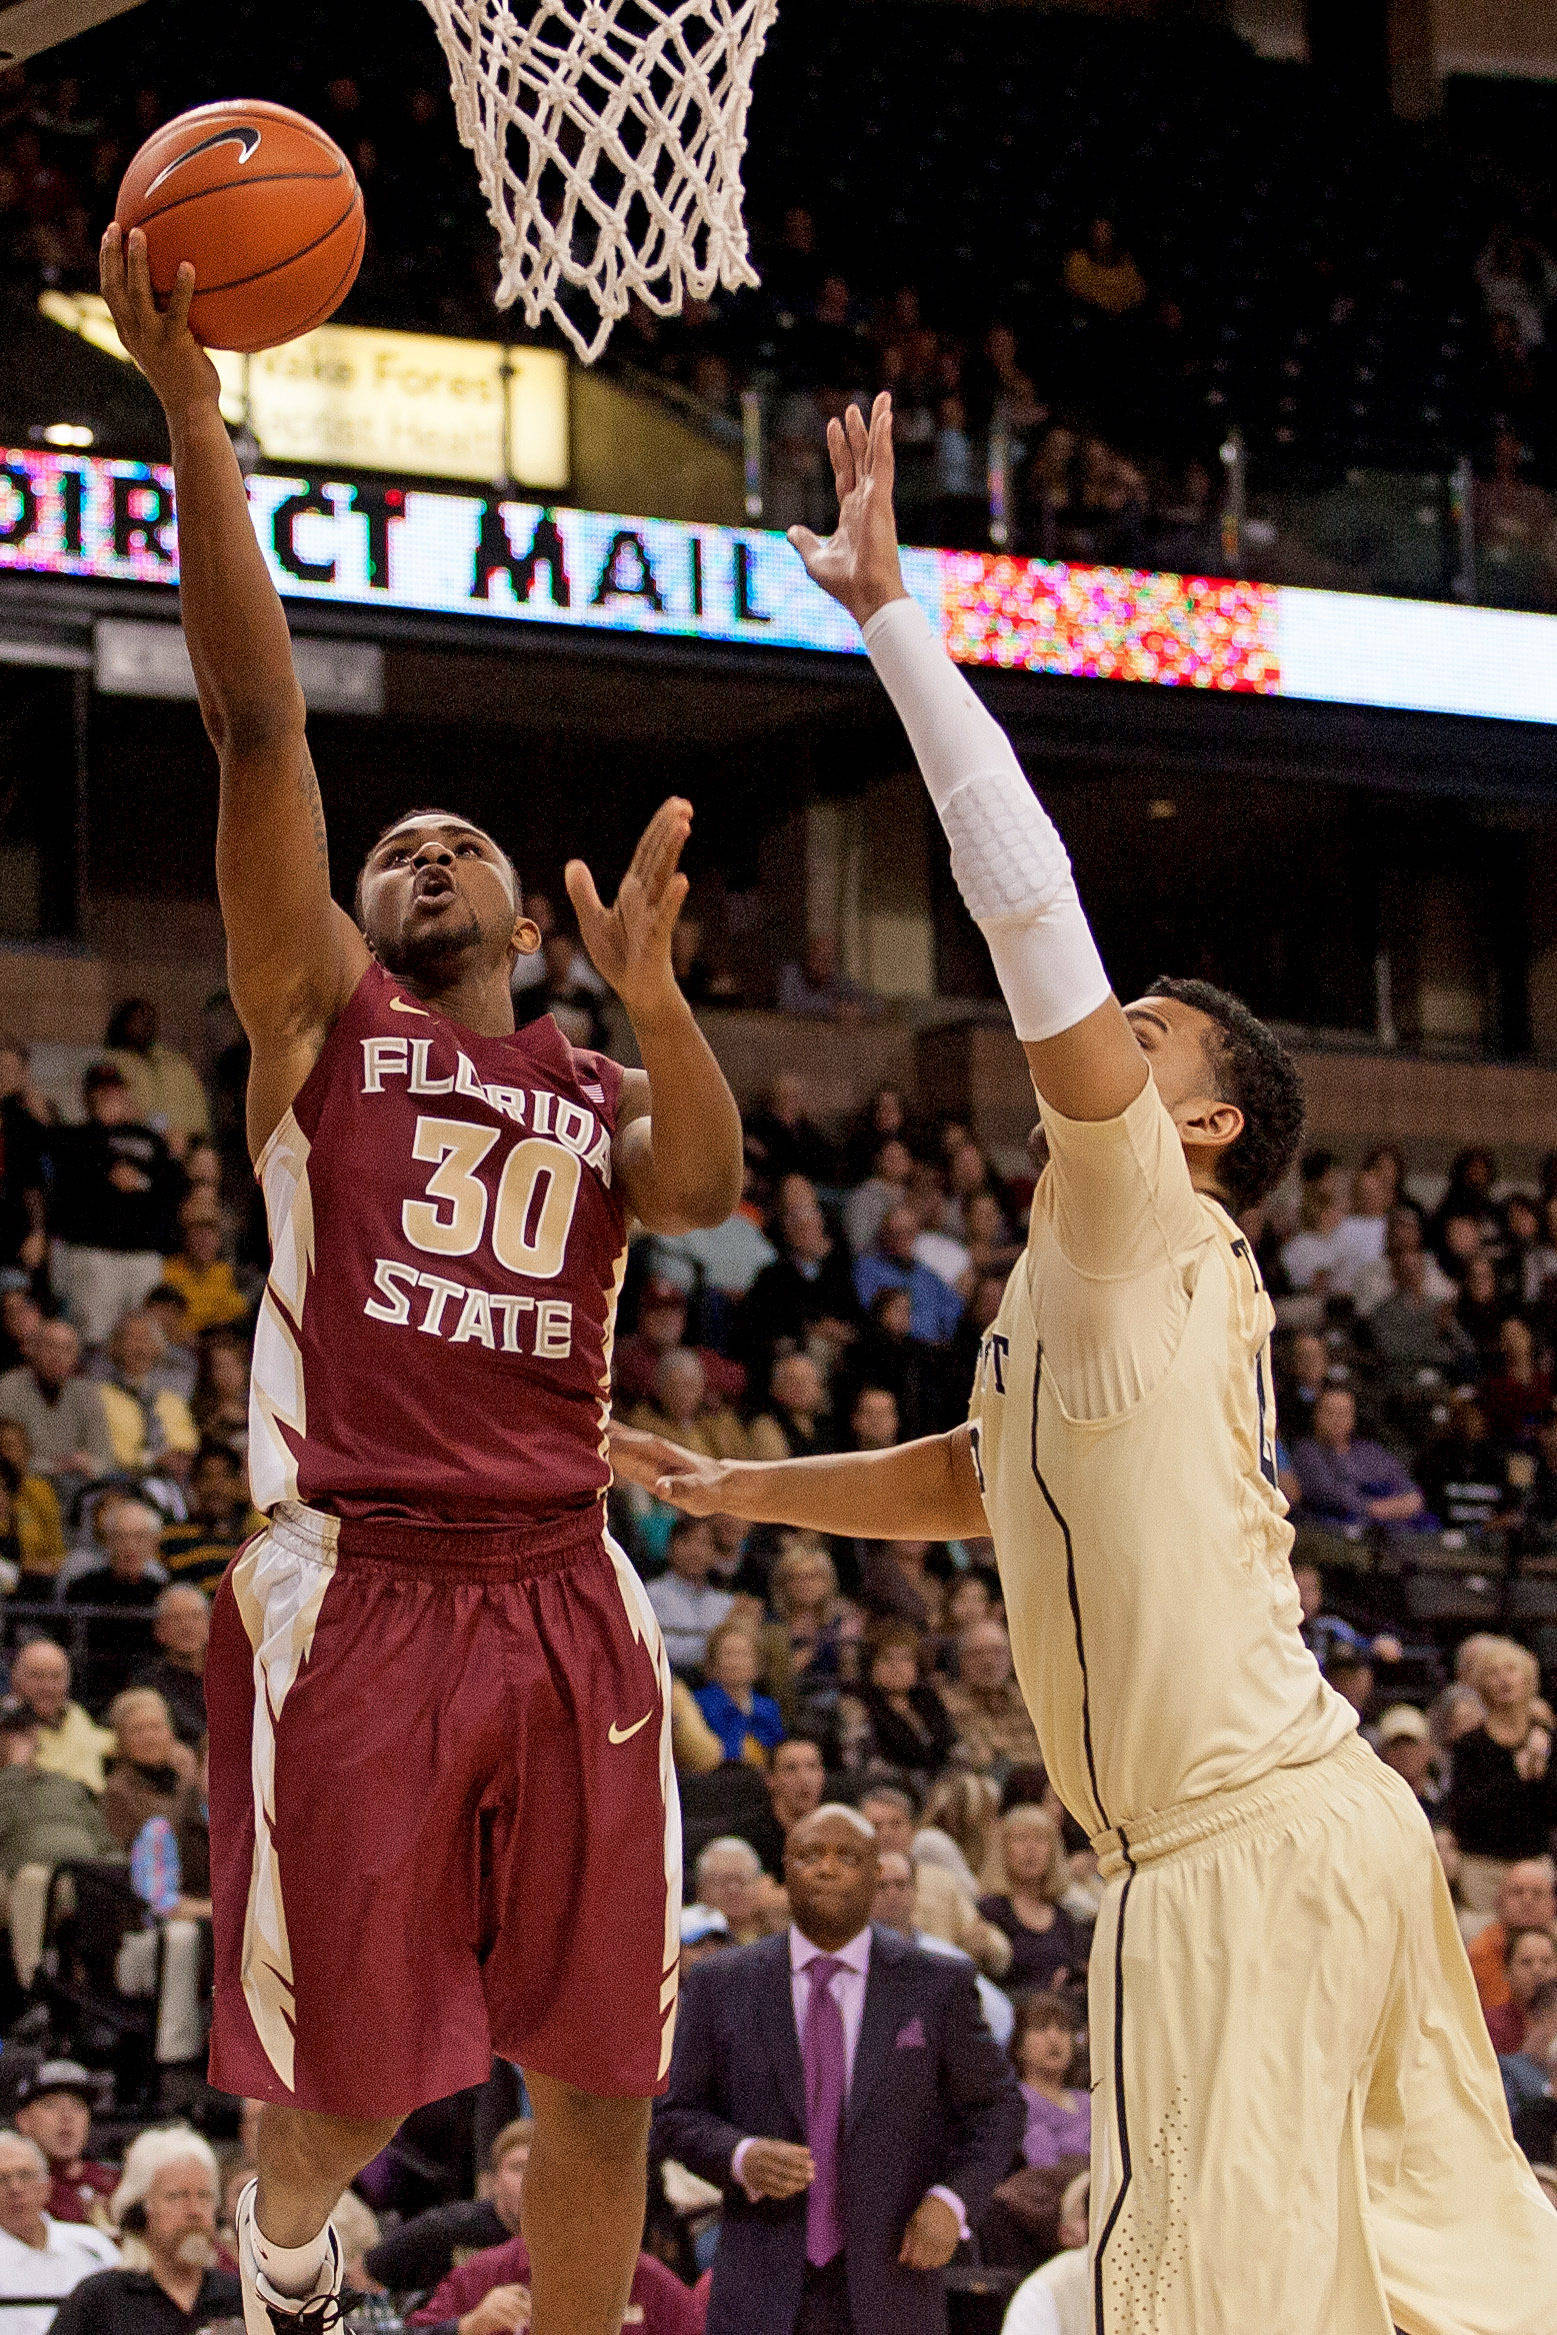 Florida State Seminoles guard Ian Miller (30) goes up for a shot while Wake Forest Demon Deacons forward Devin Thomas (2) defends. (Jeremy Brevard-USA TODAY Sports)